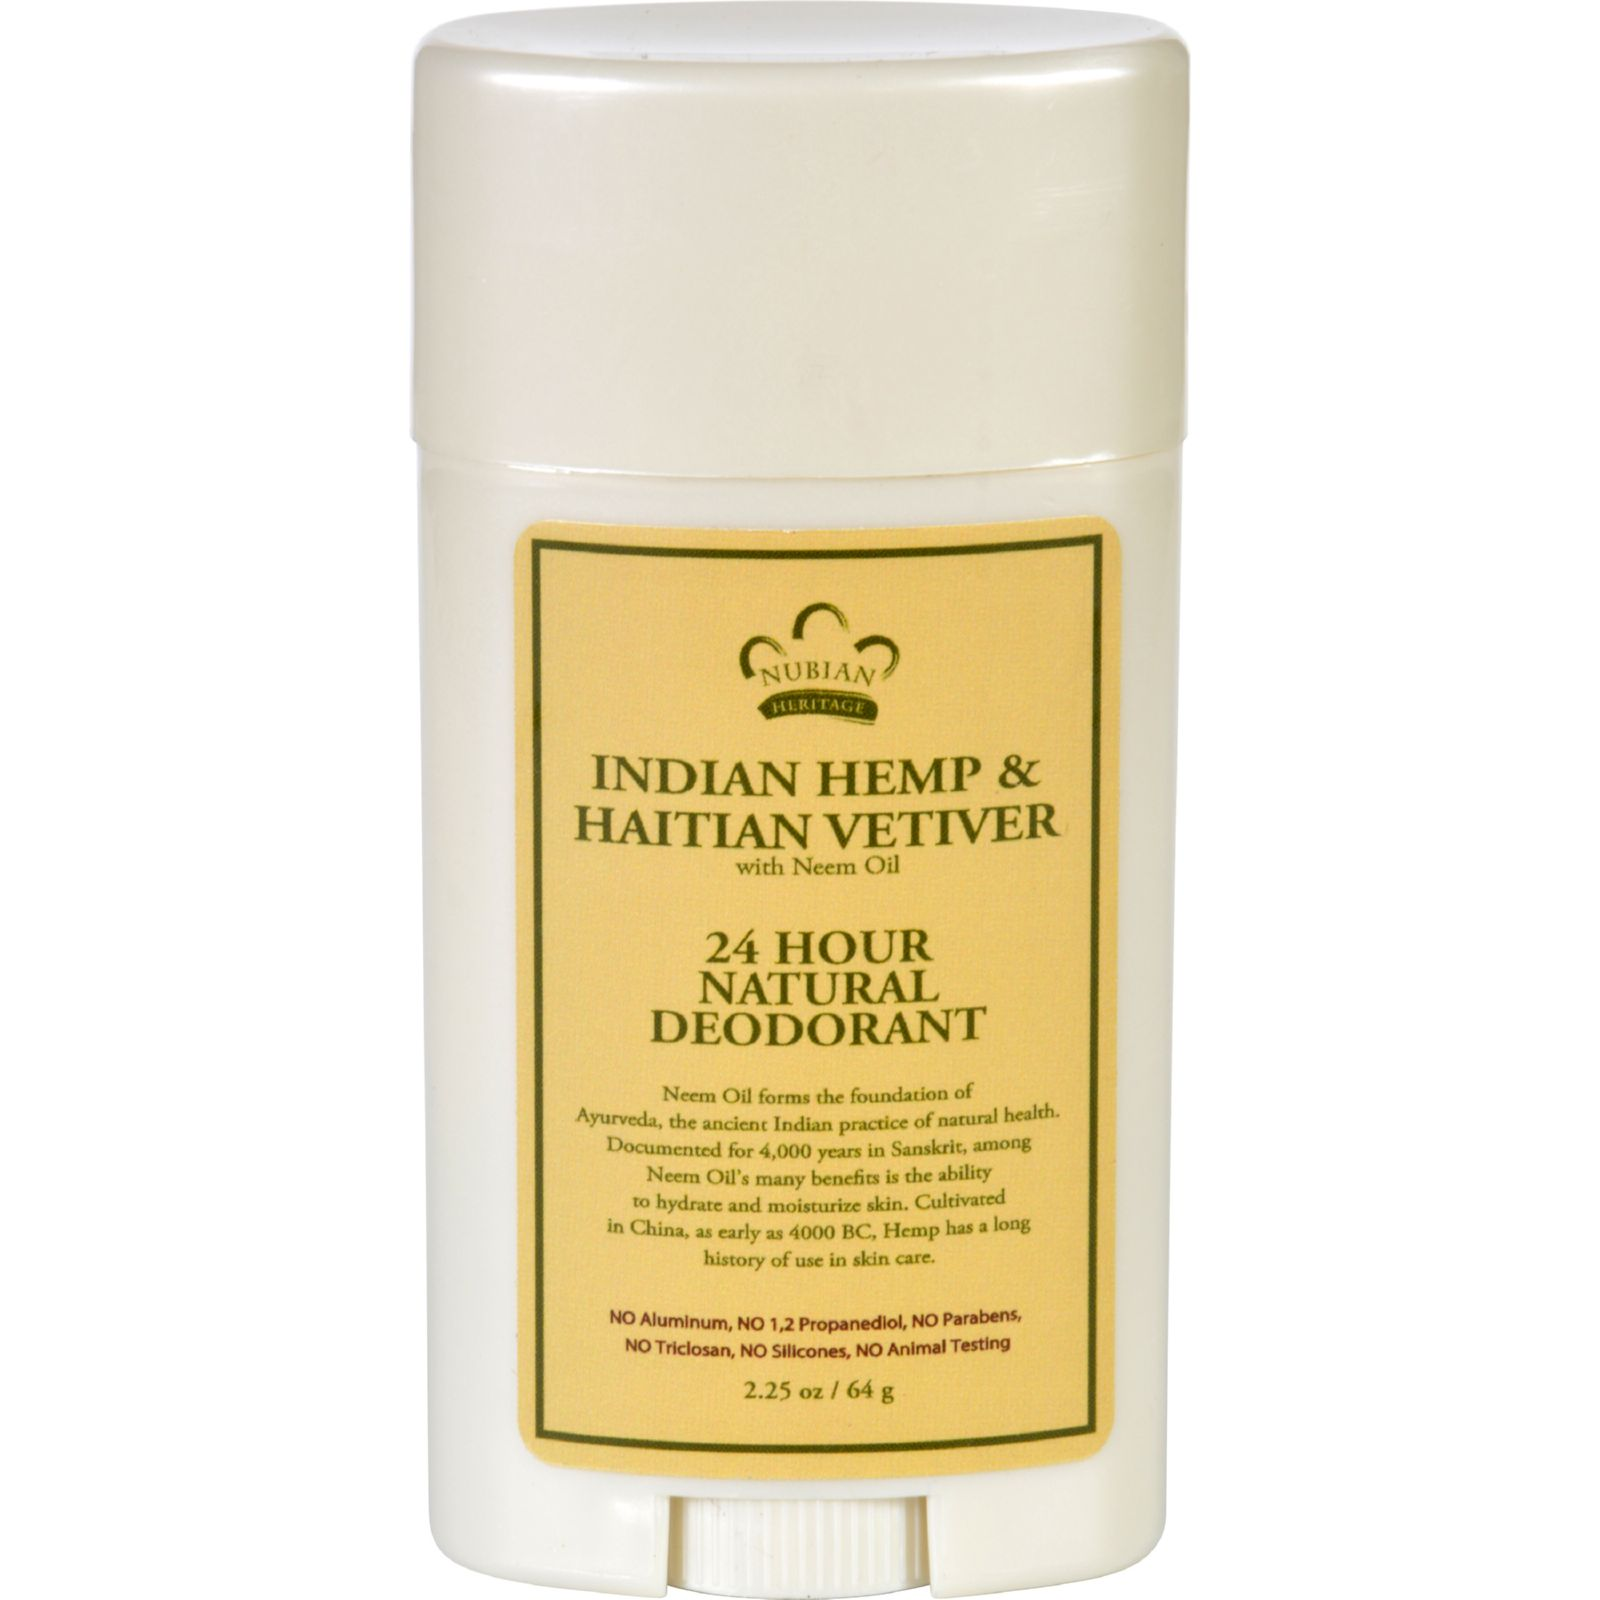 Nubian Heritage Deodorant  All Natural  24 Hour  Indian Hemp and Haitian Vetiver  with Neem Oil  2.25 oz